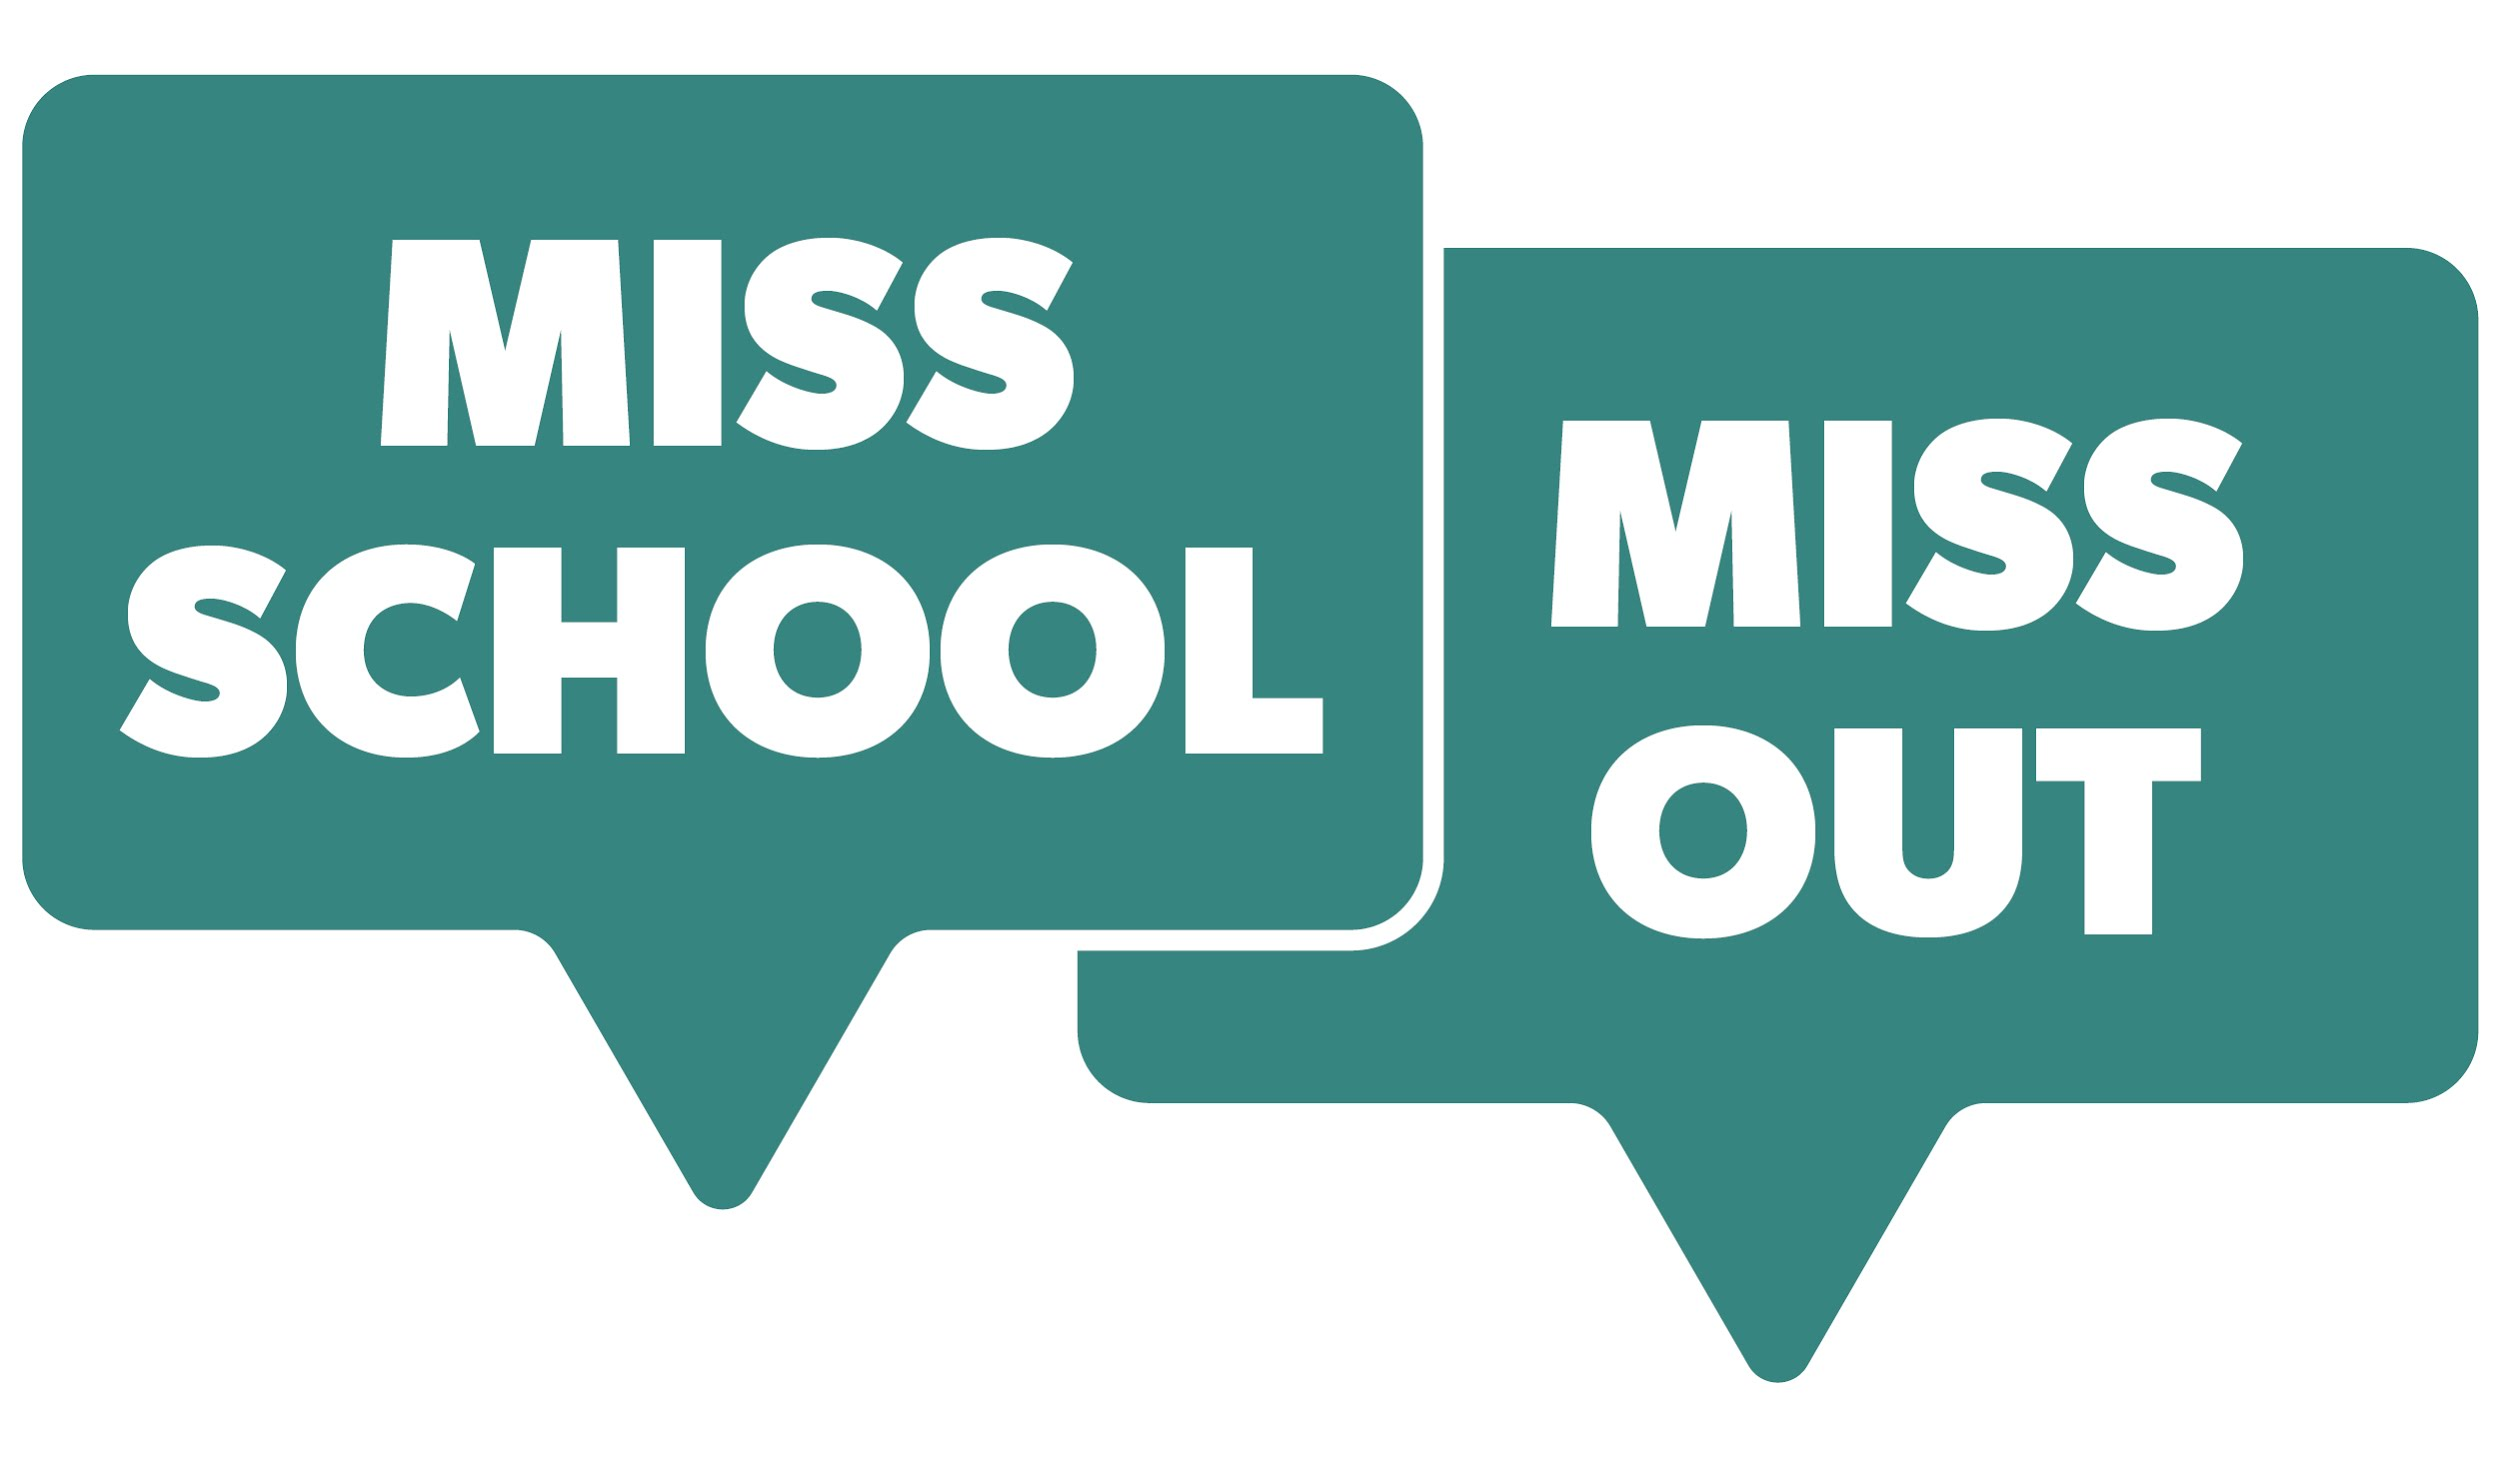 MISS SCHOOL MISS OUT LOGO